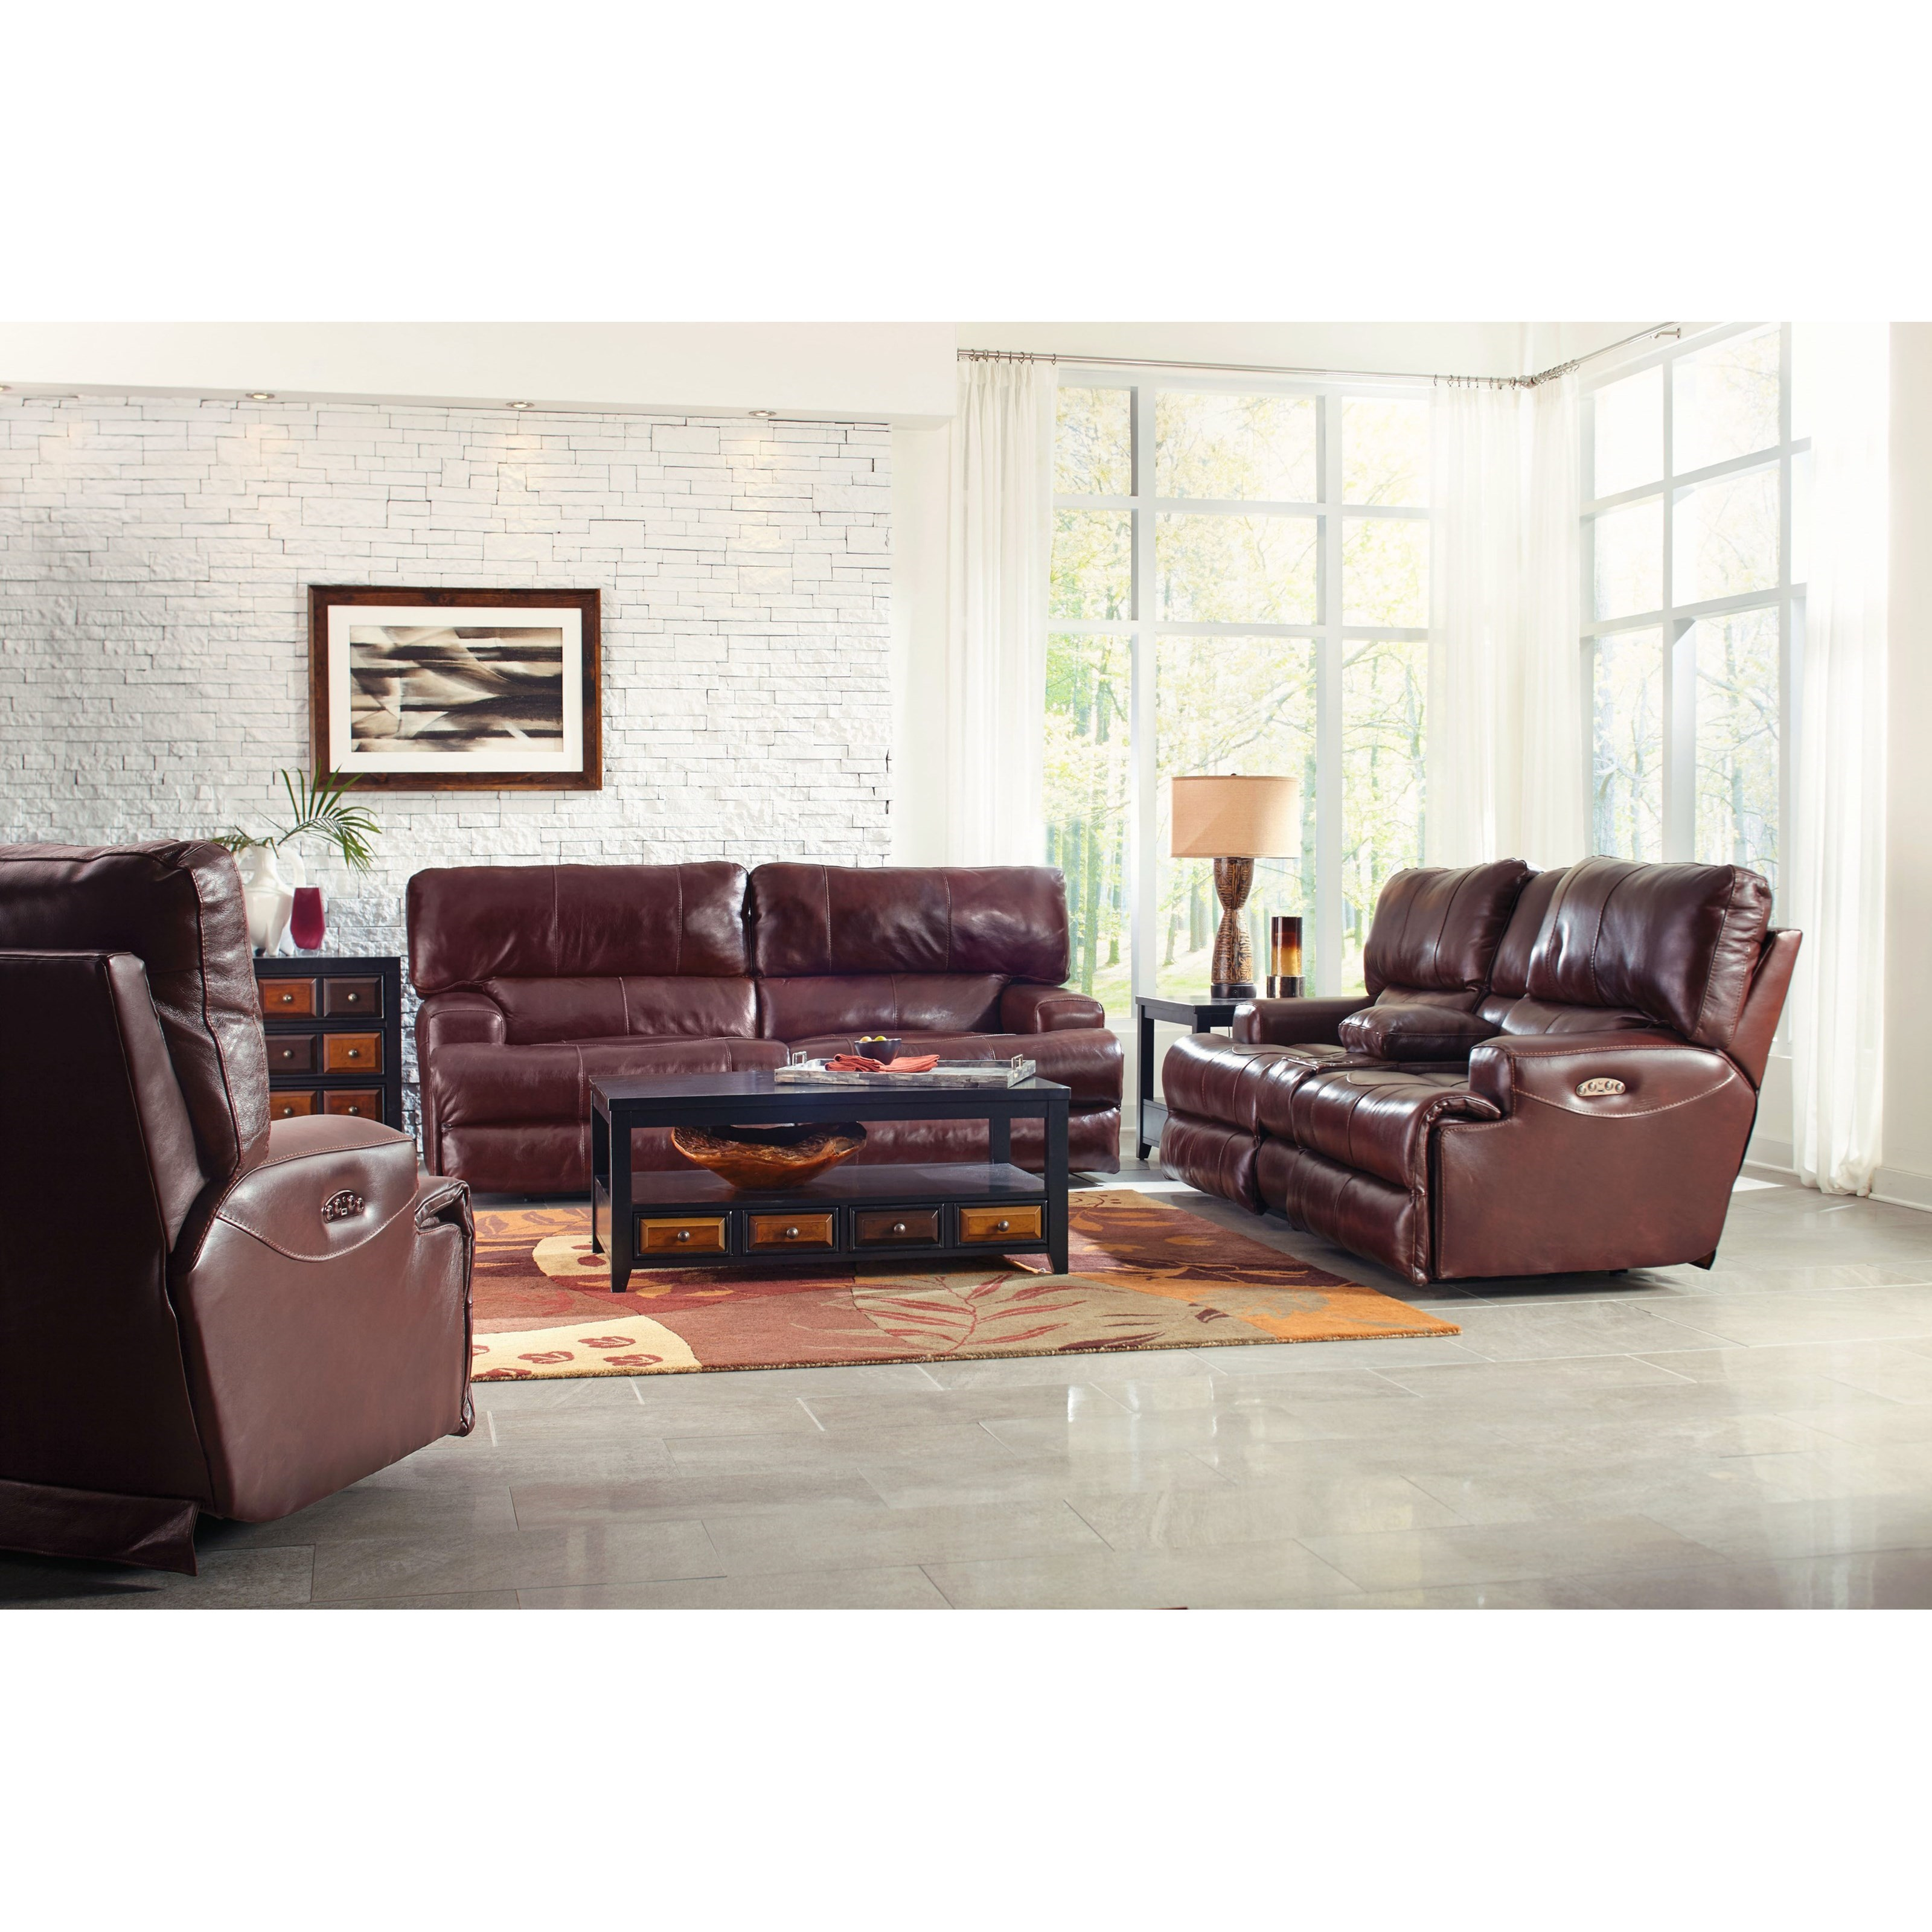 Wembley Reclining Living Room Group by Catnapper at Northeast Factory Direct